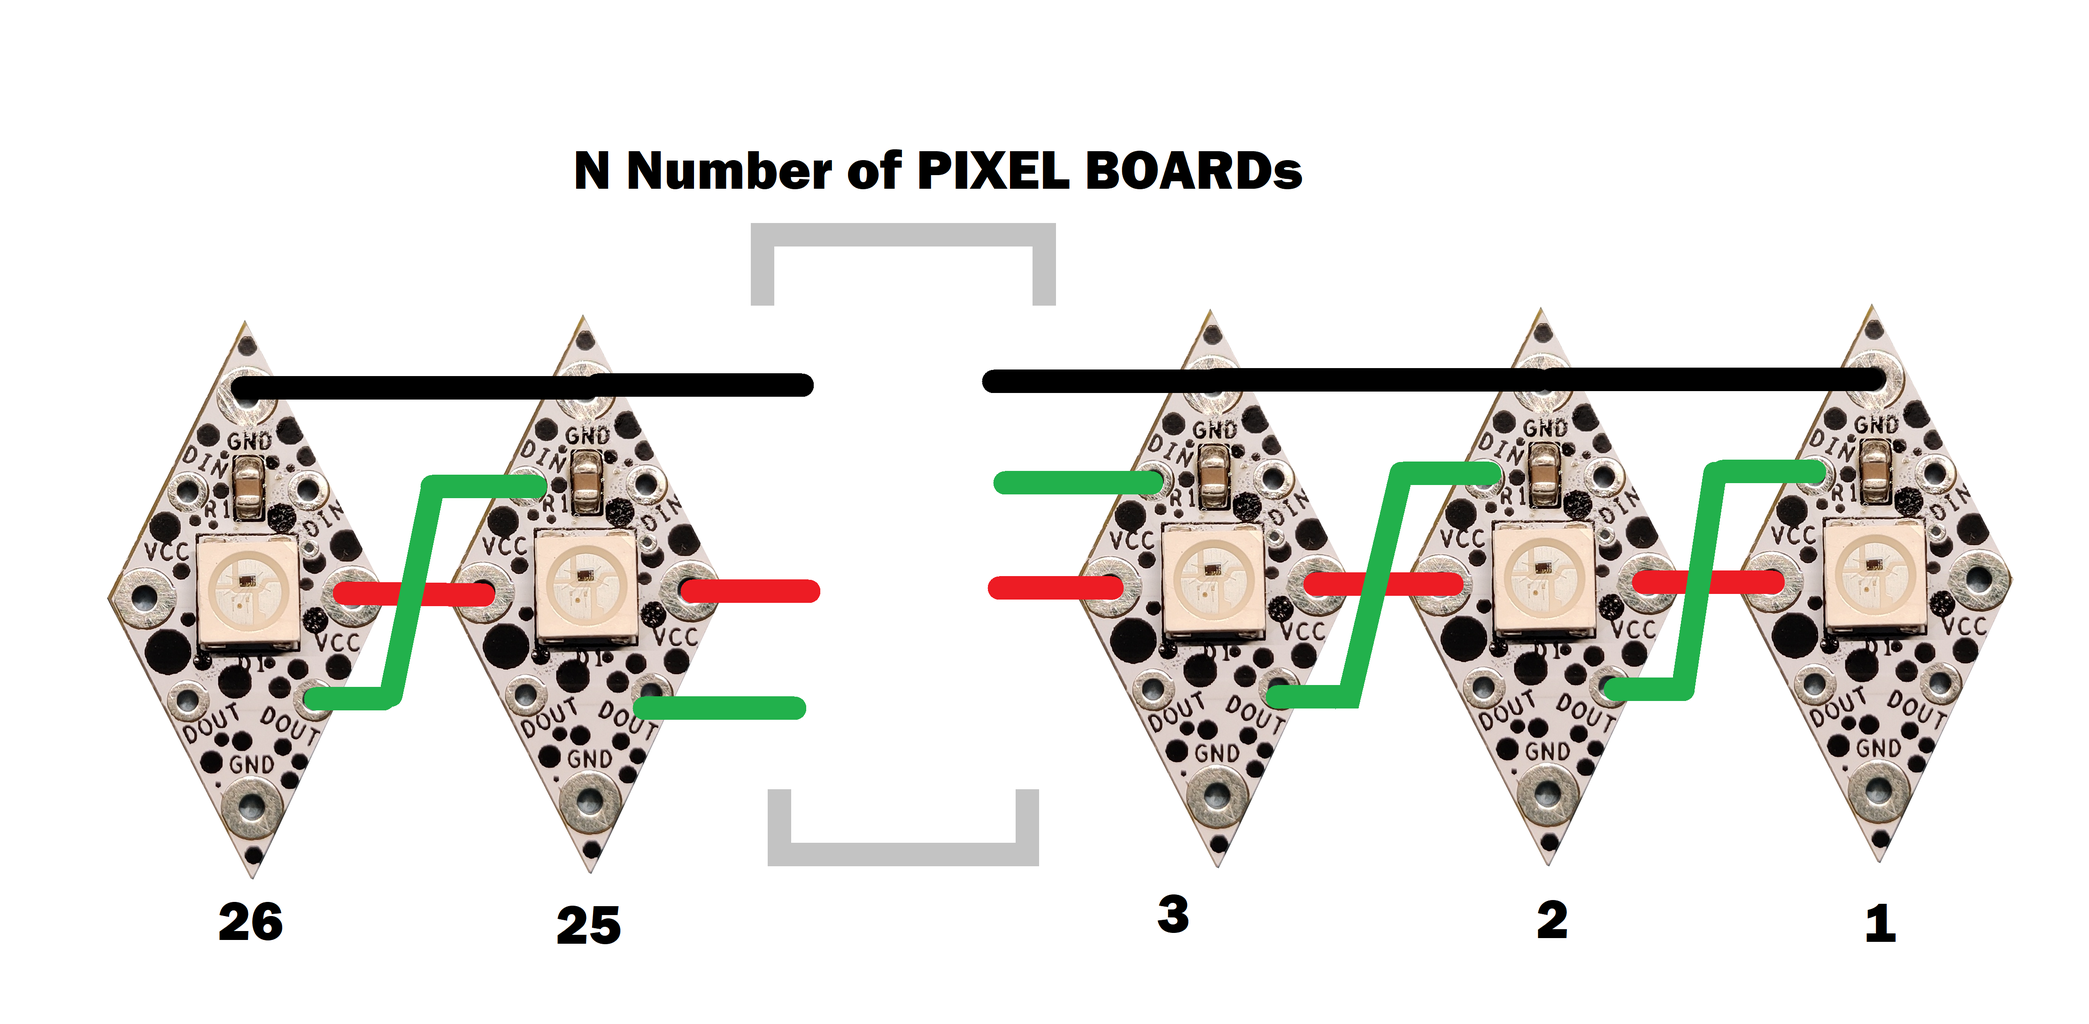 Schematic of PIXIE Connections